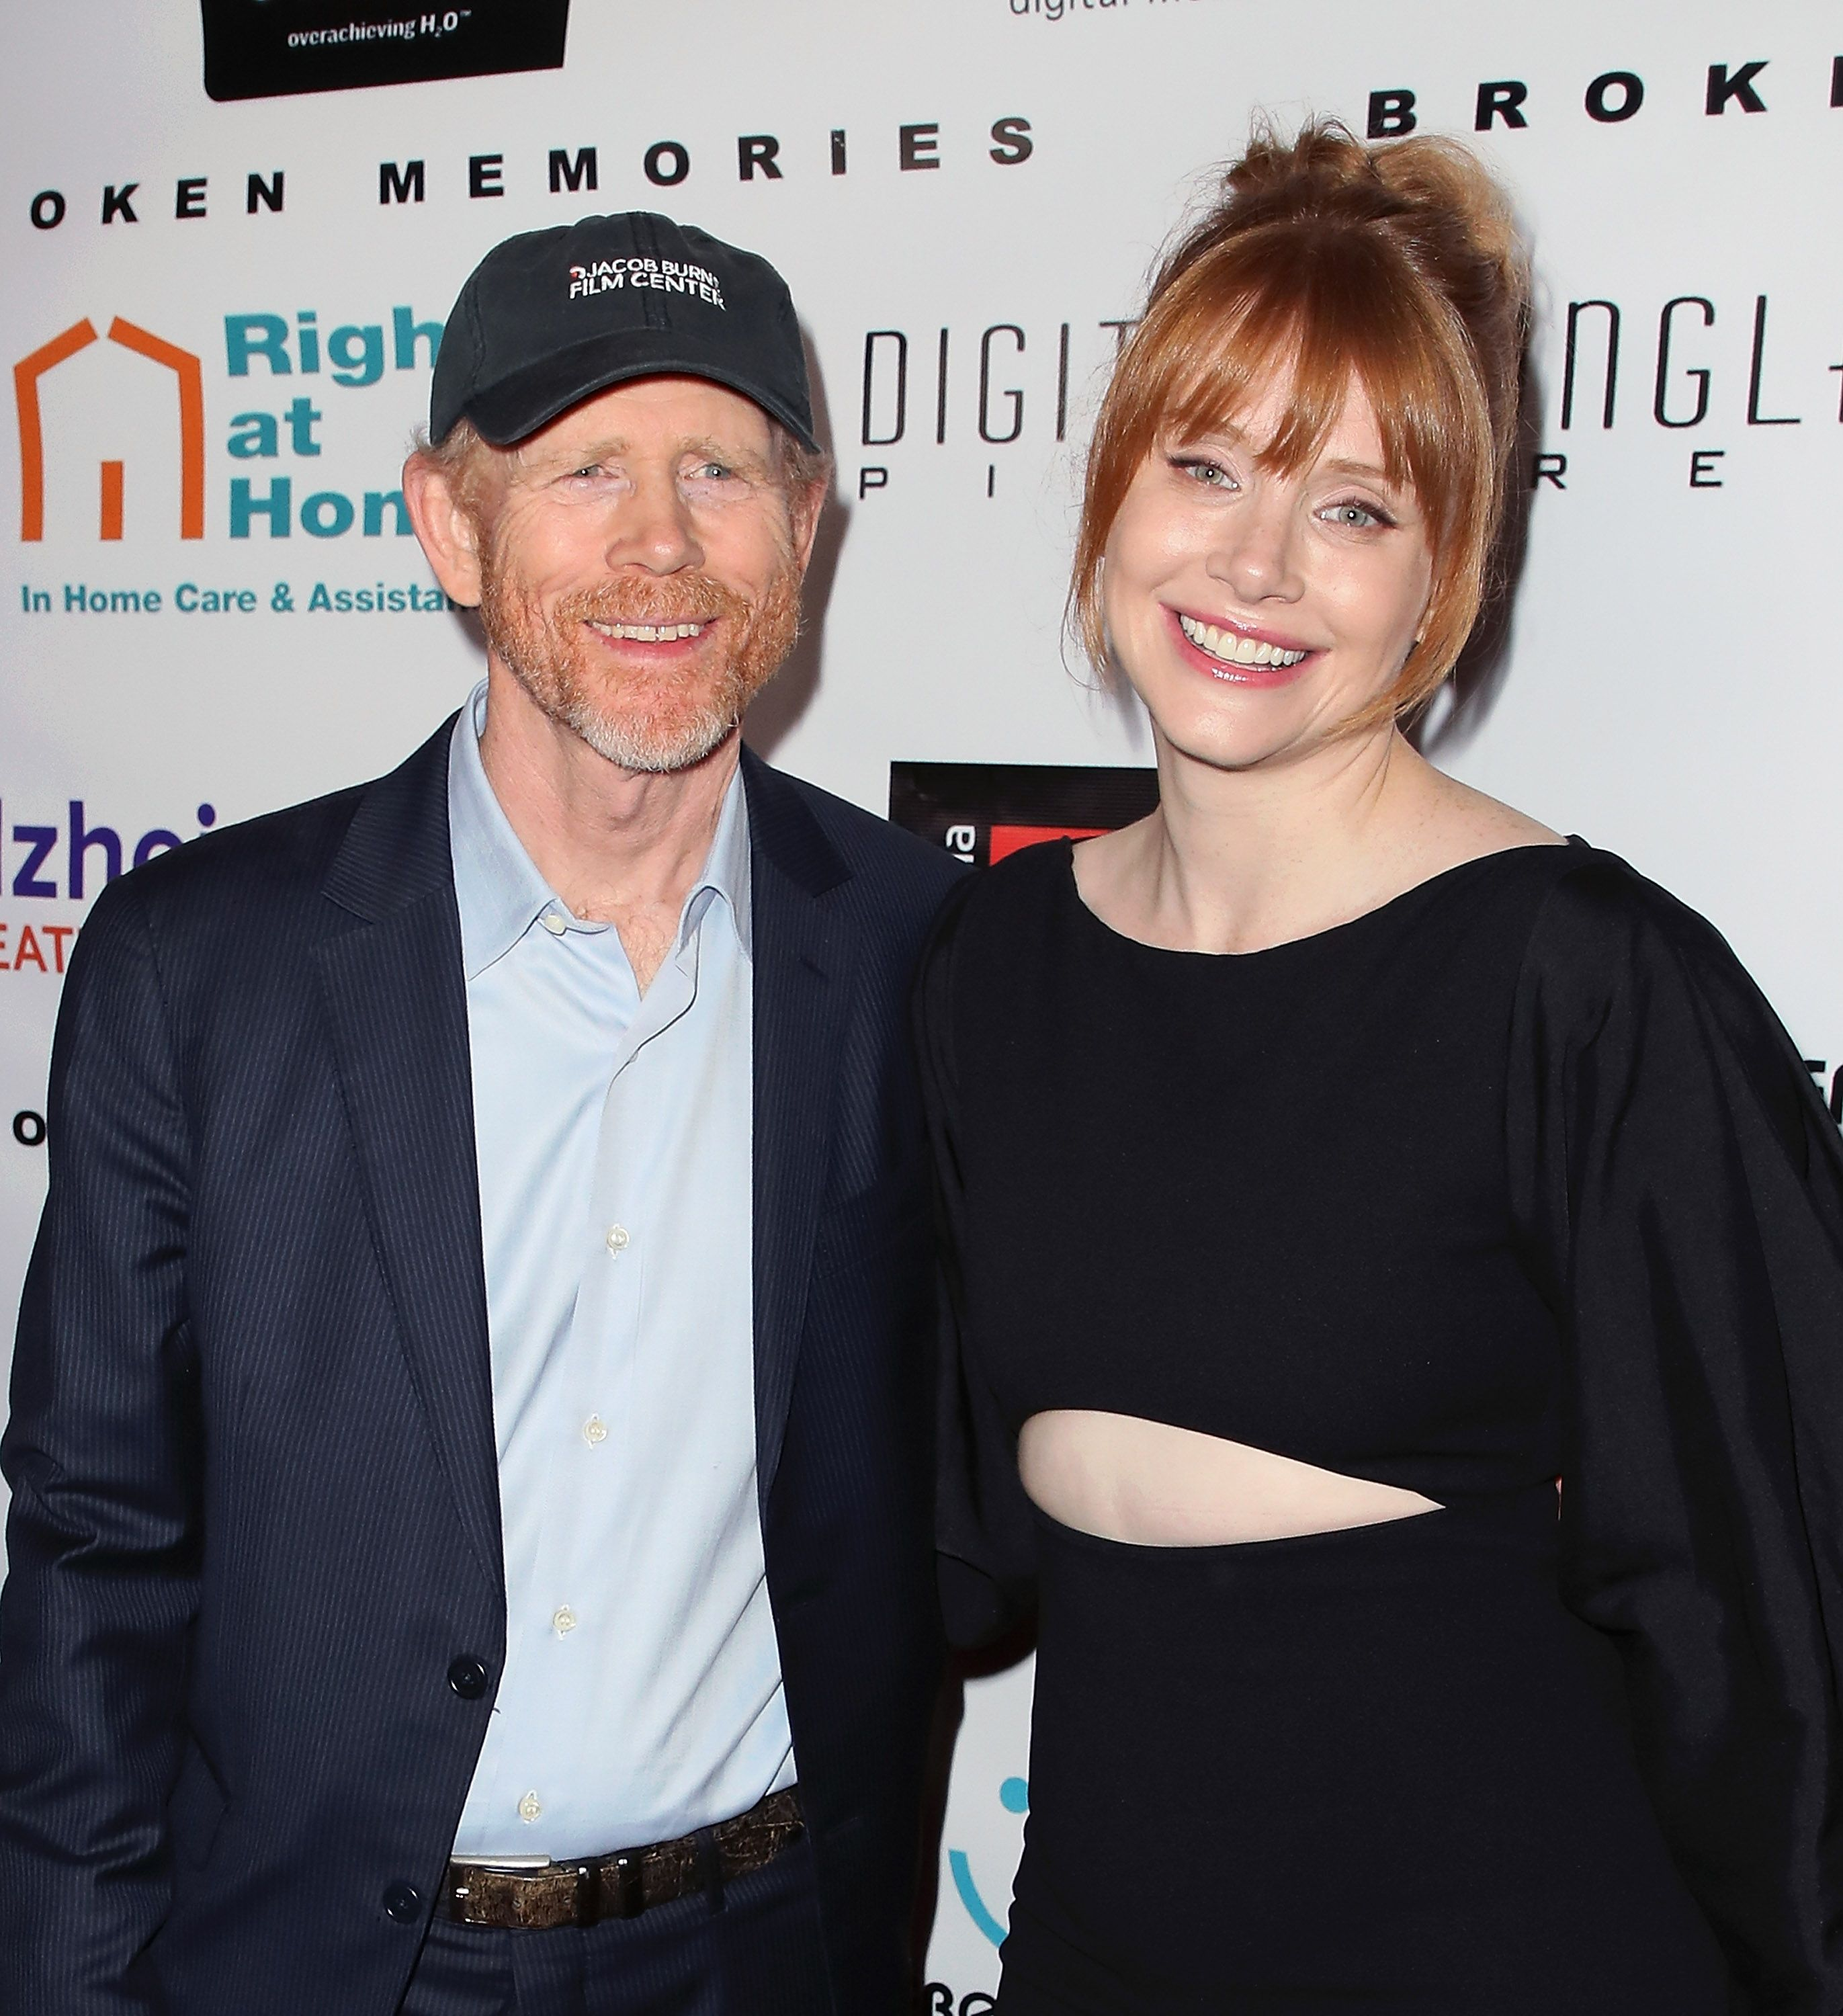 Ron Howard and his daughter Bryce Howard  Photo: Getty Images